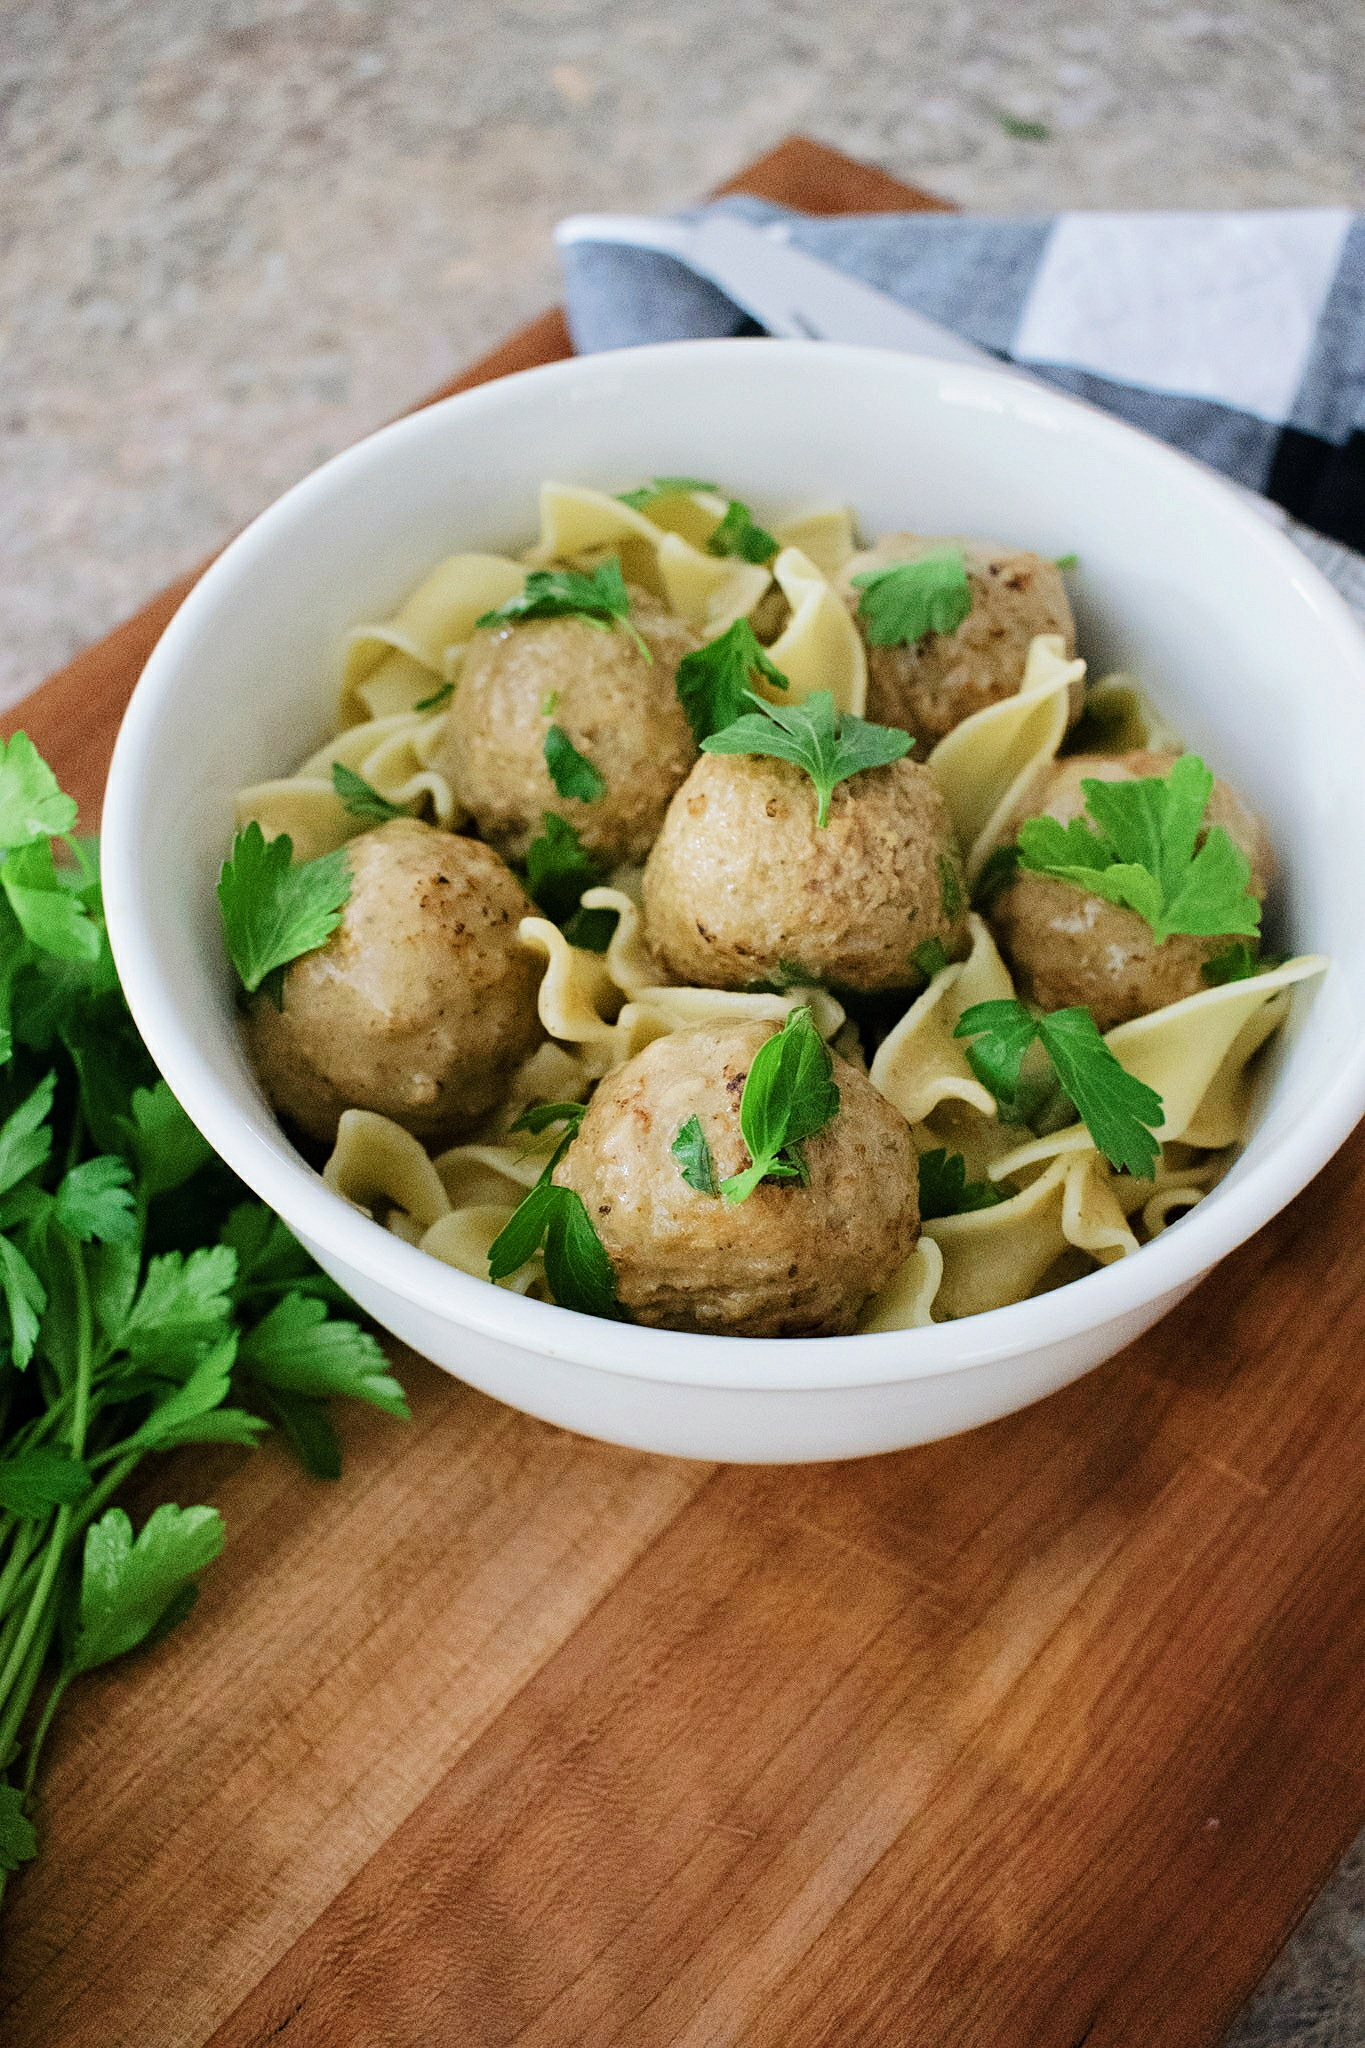 Egg Noodles topped with swedish meatballs and a sprinkle of parsley